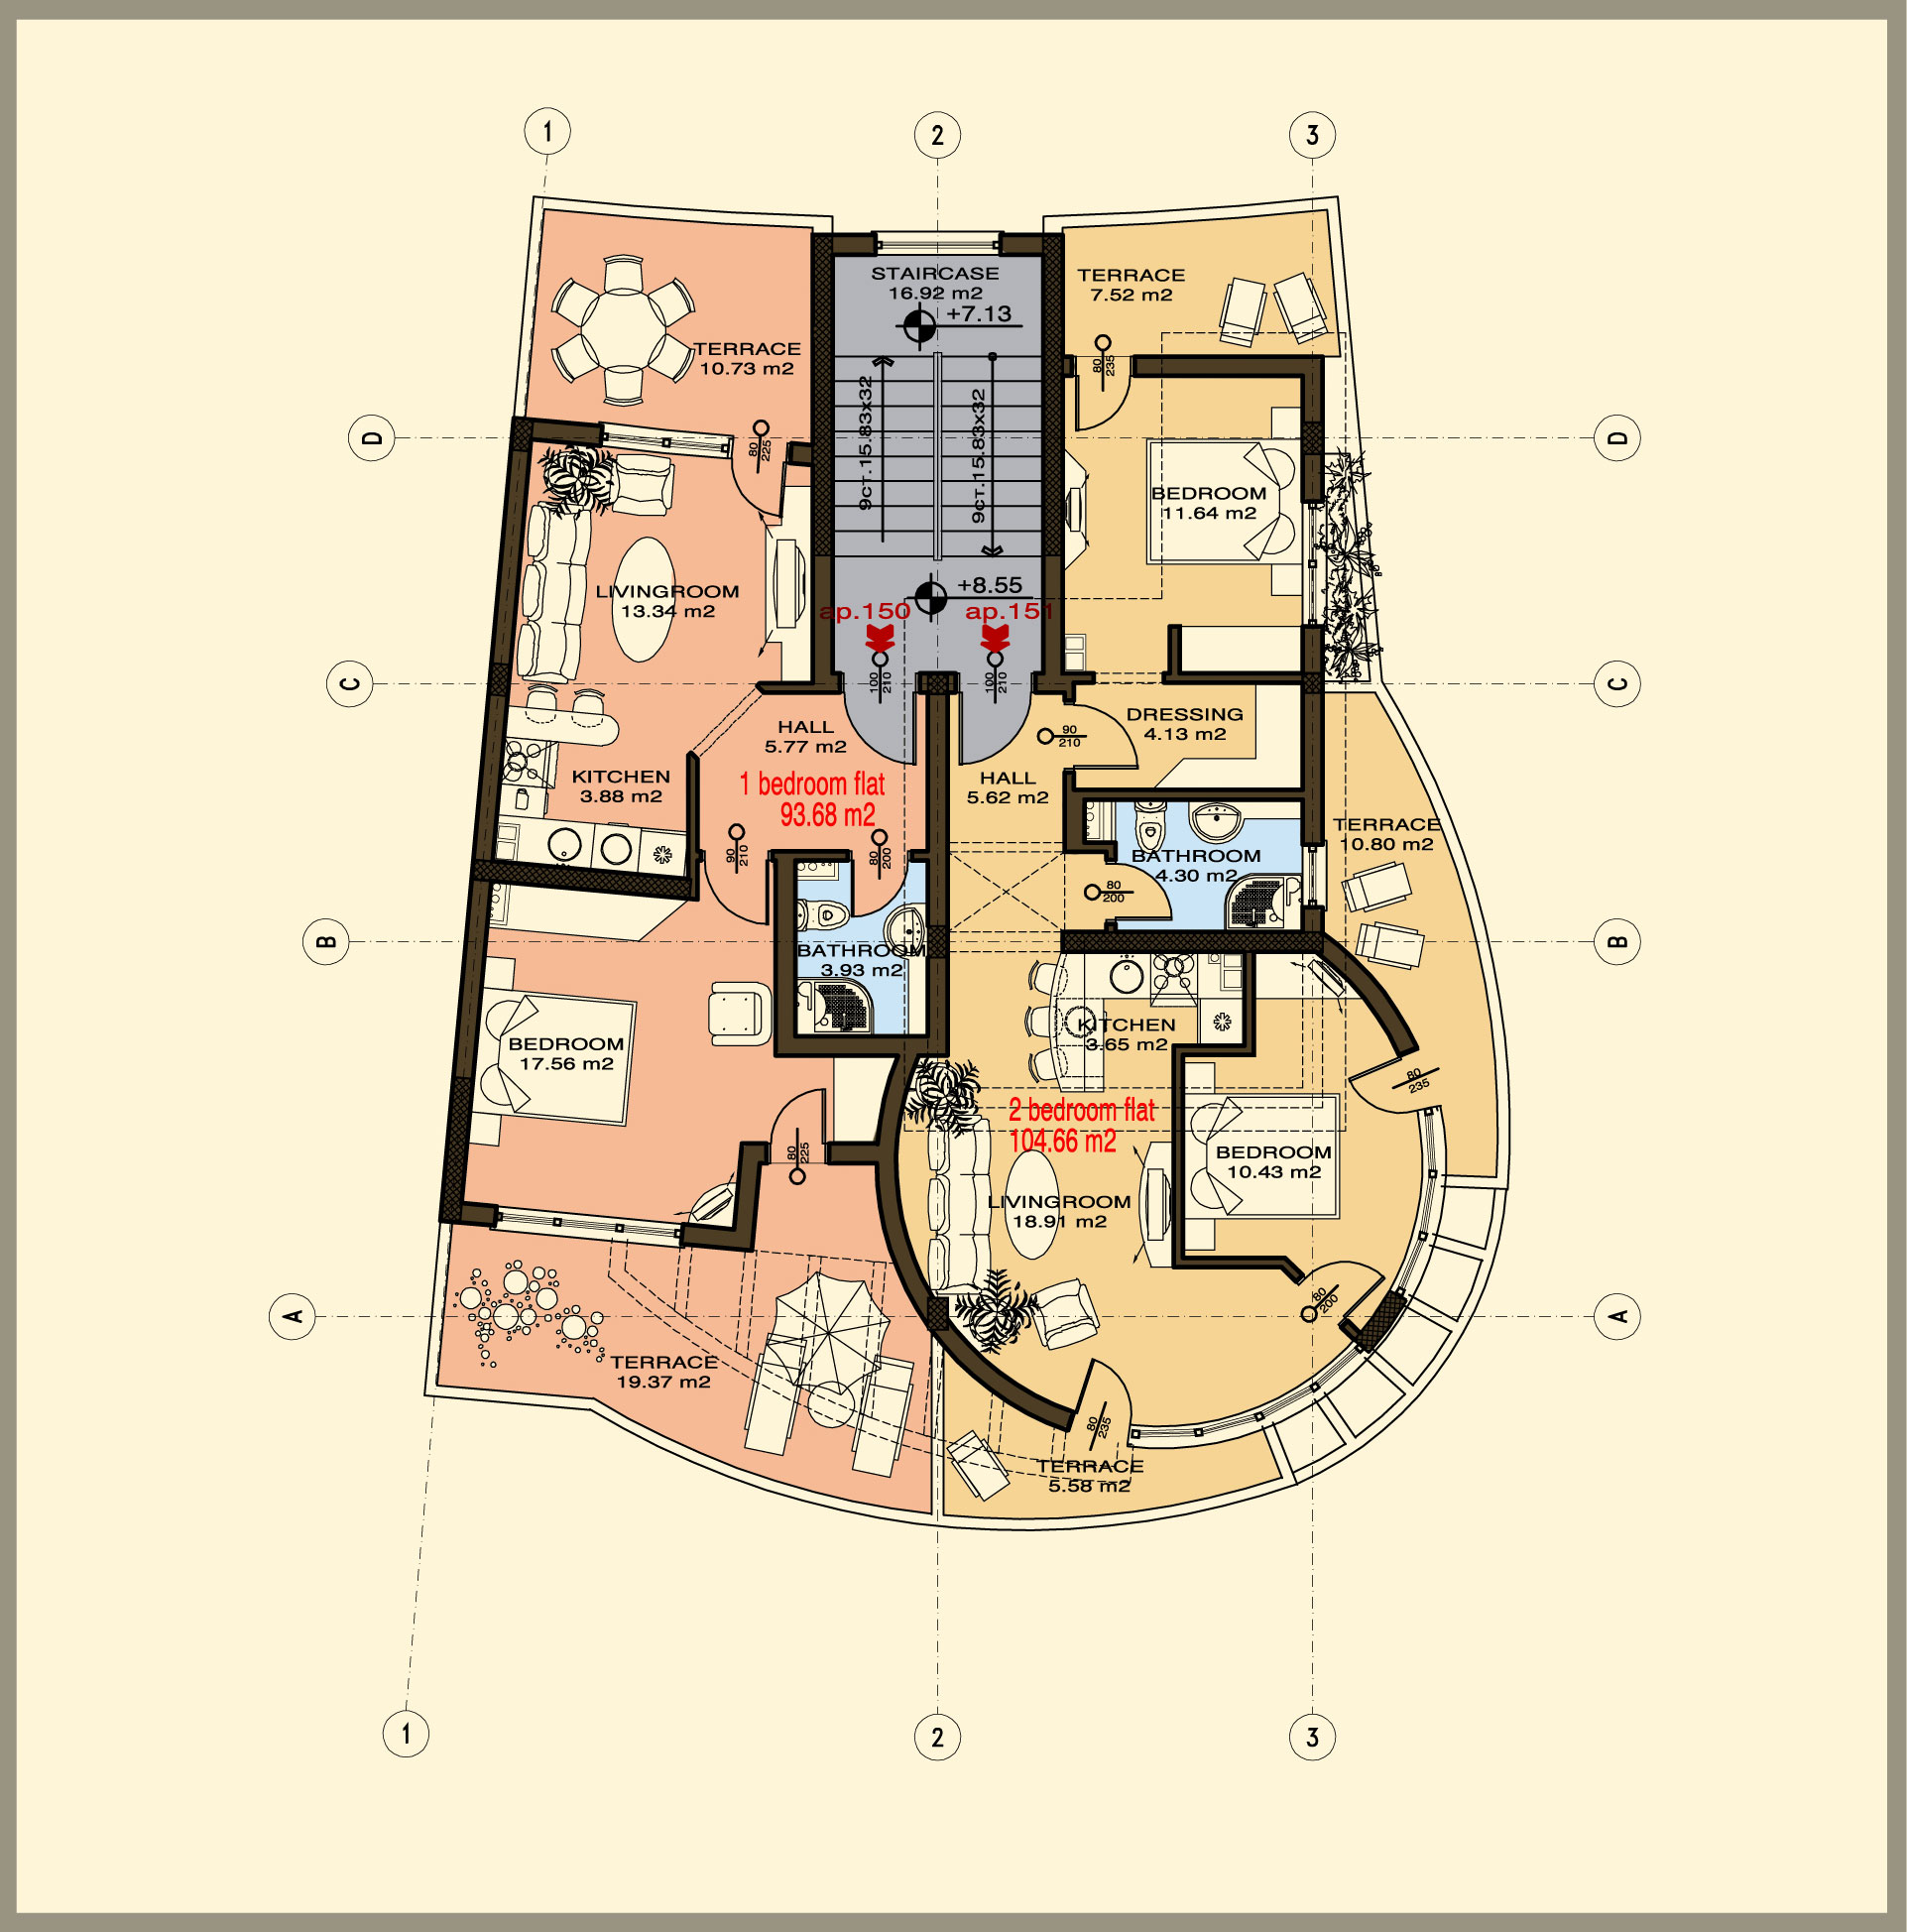 Floor Plans For 160 000 Of Apartment For Sale In Sunset Kosharitsa Near Sunny Beach